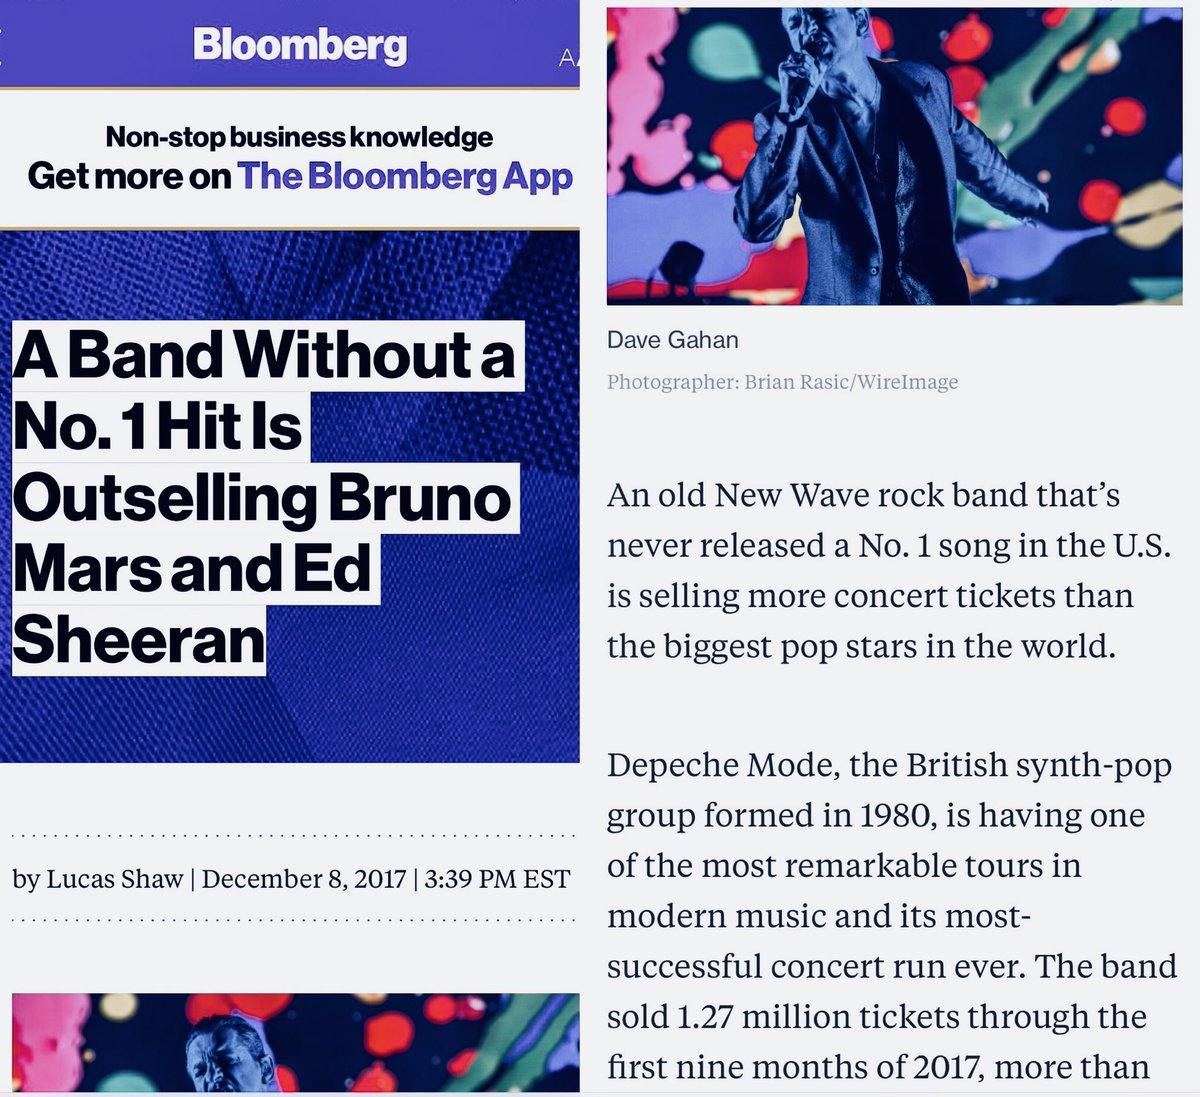 """#Bloomberg  #embarrassing selves,marvel """"#old #new #wave #band """" sels >m th #Bruno #Mars  #Depeche #Mode #genZ #hipsters pic.twitter.com/cNK7G82wFo"""